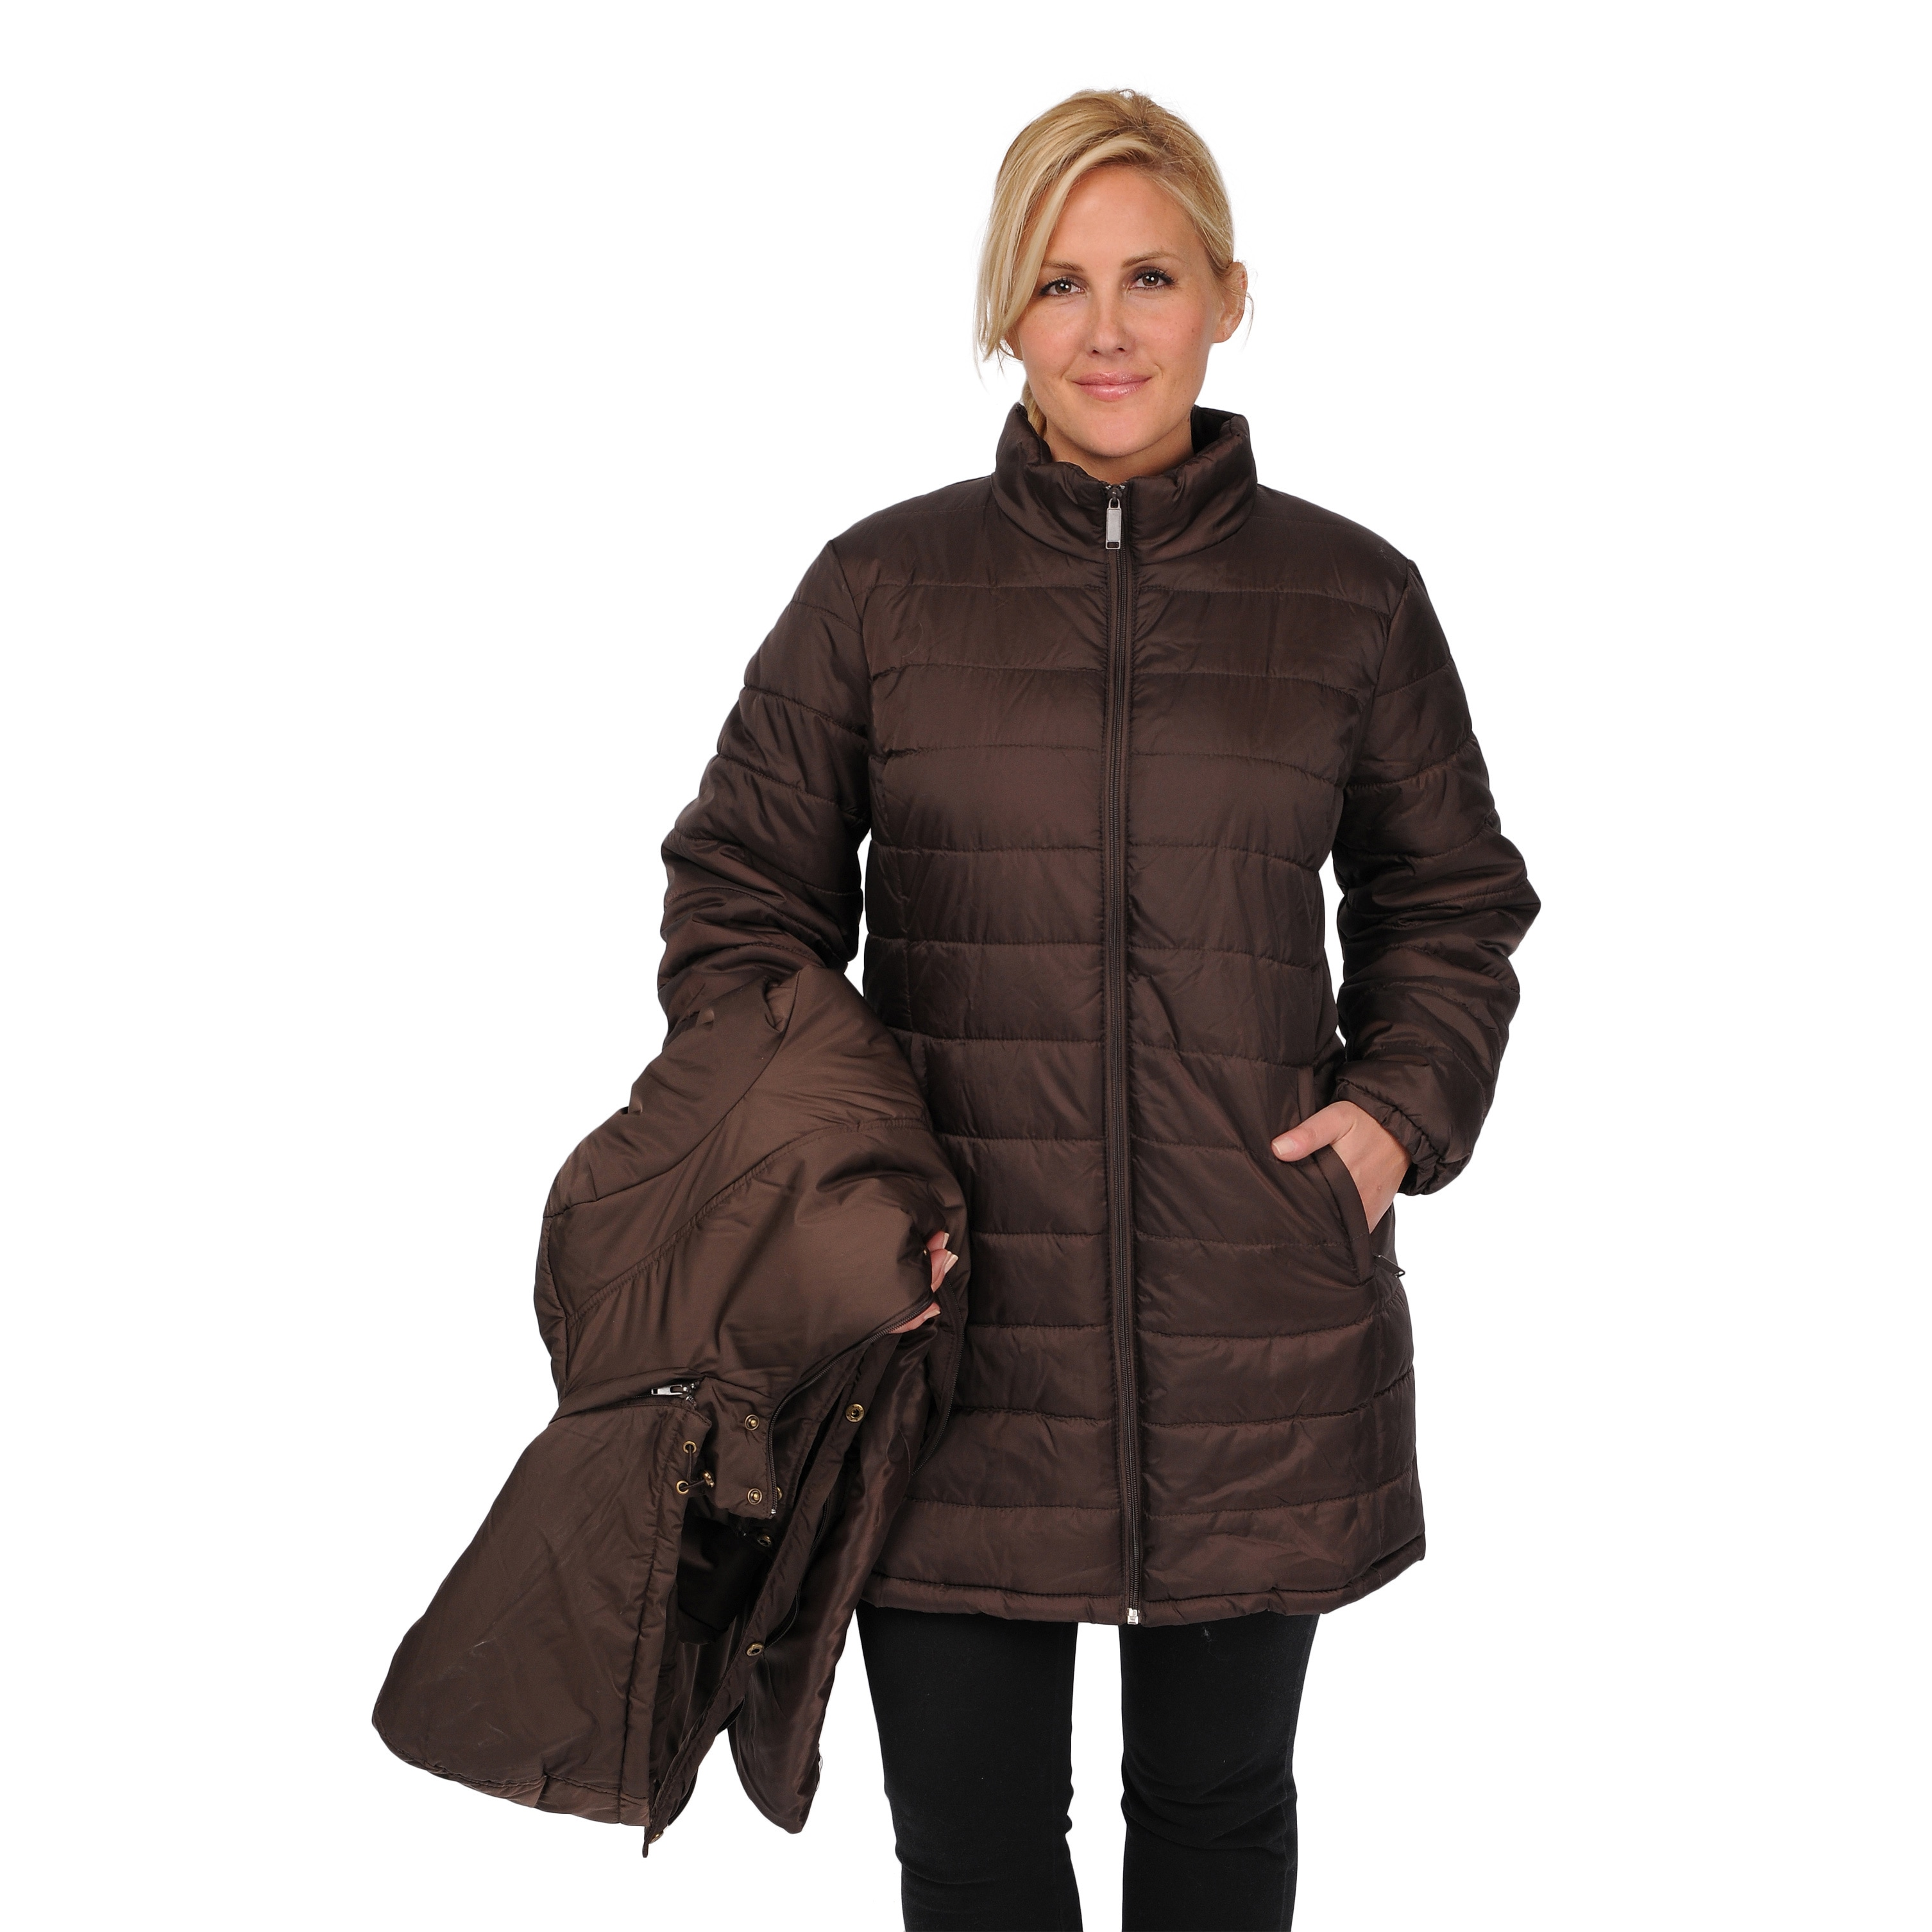 ab6b9f2b635 Shop EXcelled Women s Plus Size 3-in-1 Knee-length Jacket - Free Shipping  Today - Overstock - 9441782